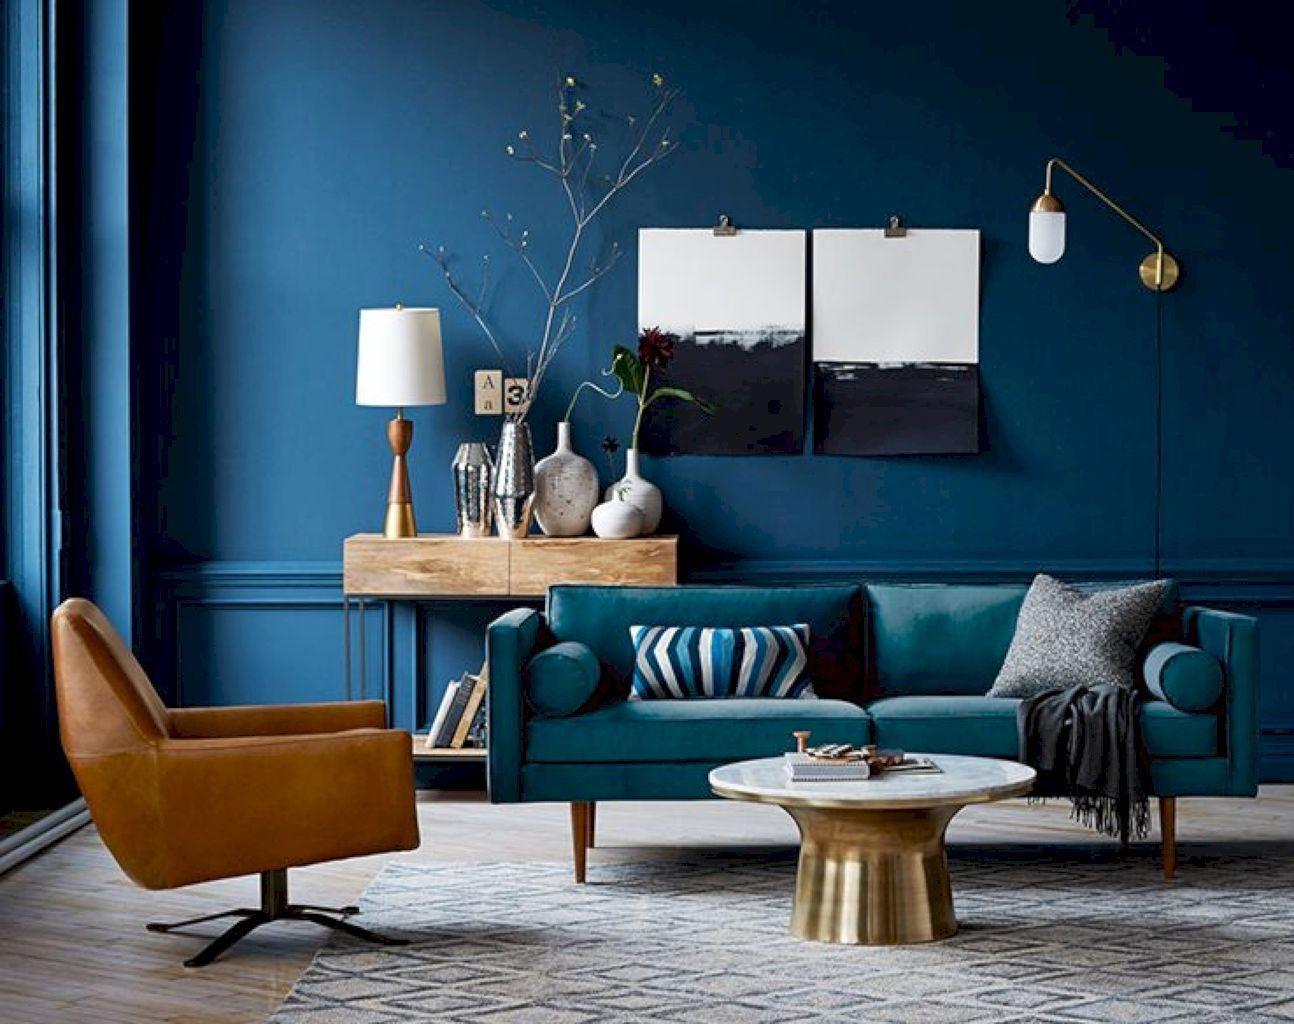 Cool 55 Beautiful Mid Century Living Room Decor Ideas Https Homeideas Co 5340 55 Beauti Blue Walls Living Room Mid Century Living Room Decor Blue Living Room